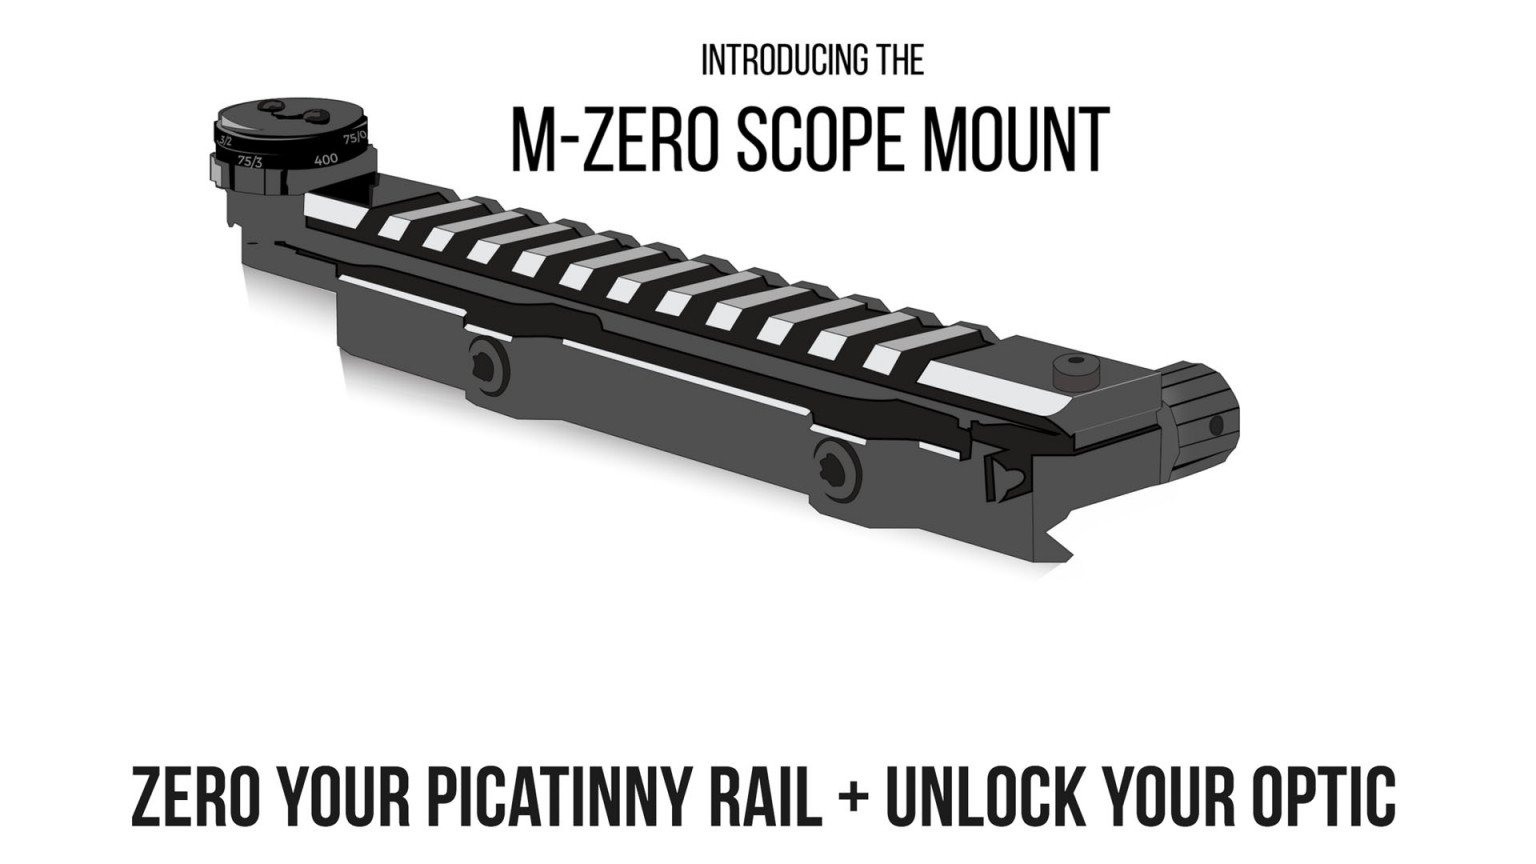 Mod Zero M-Zero Scope Mount